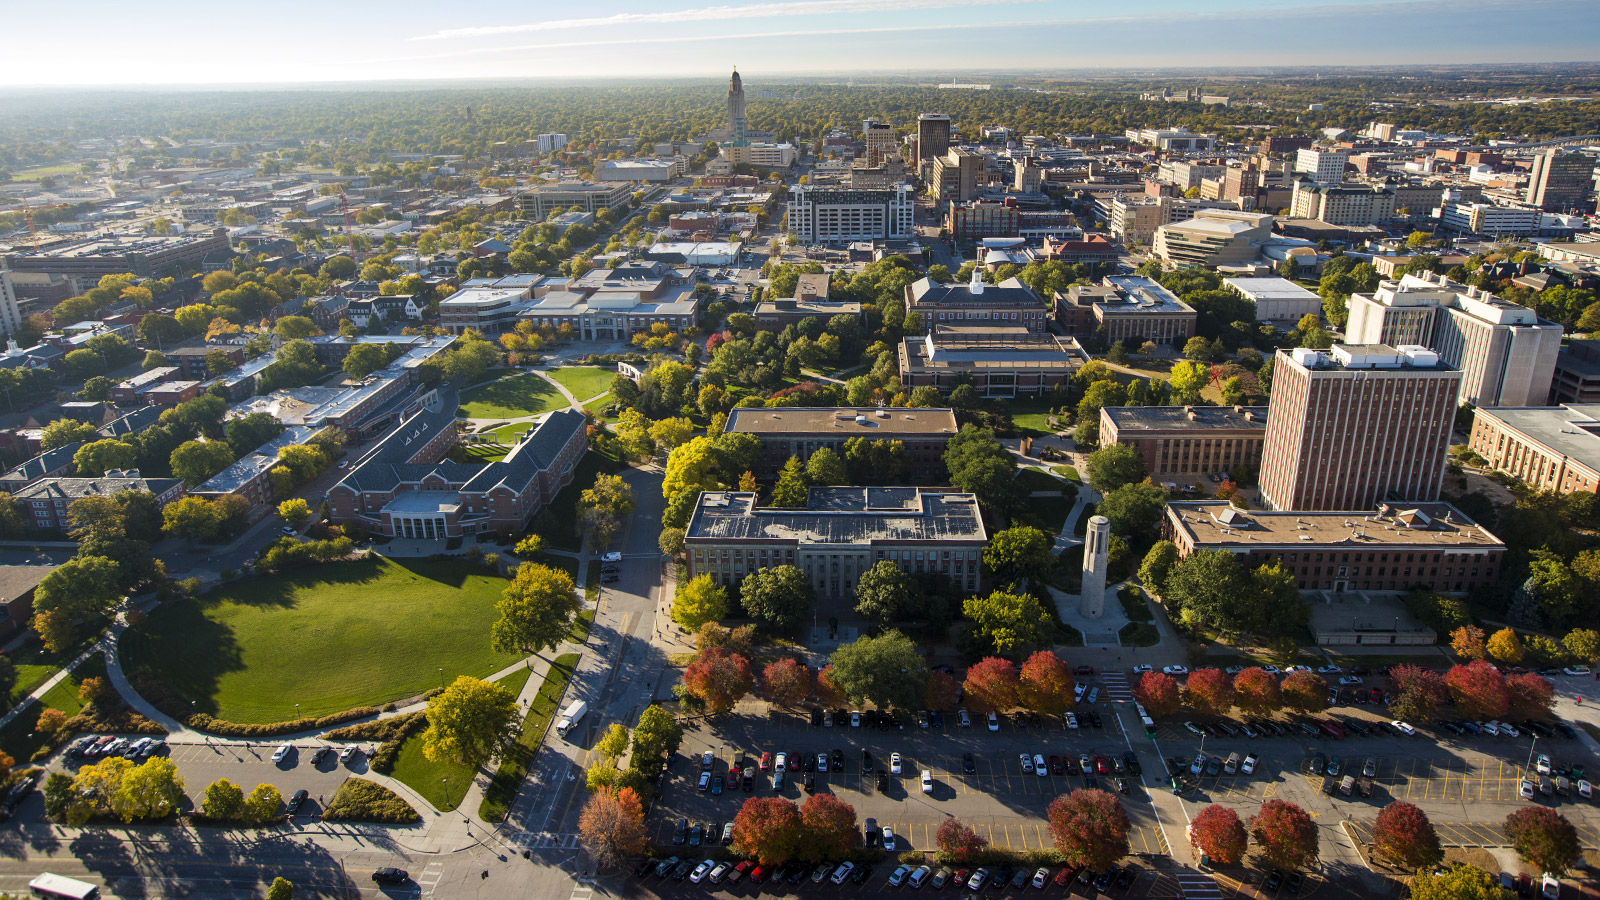 UNL Campus and the city of Lincoln